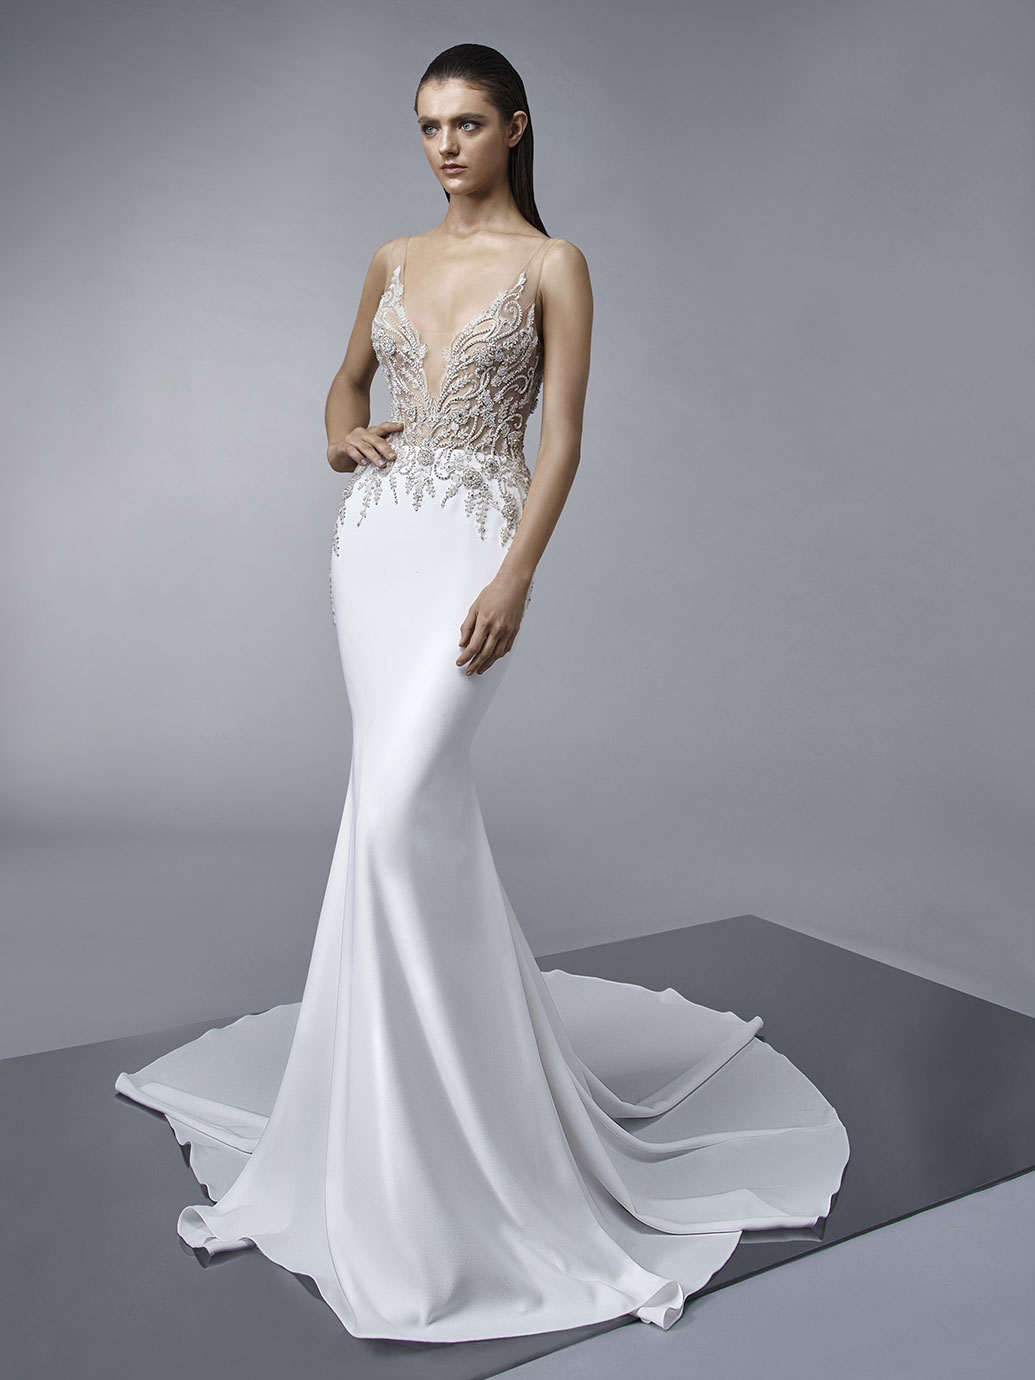 Introducing The Enzoani 2018 Collection